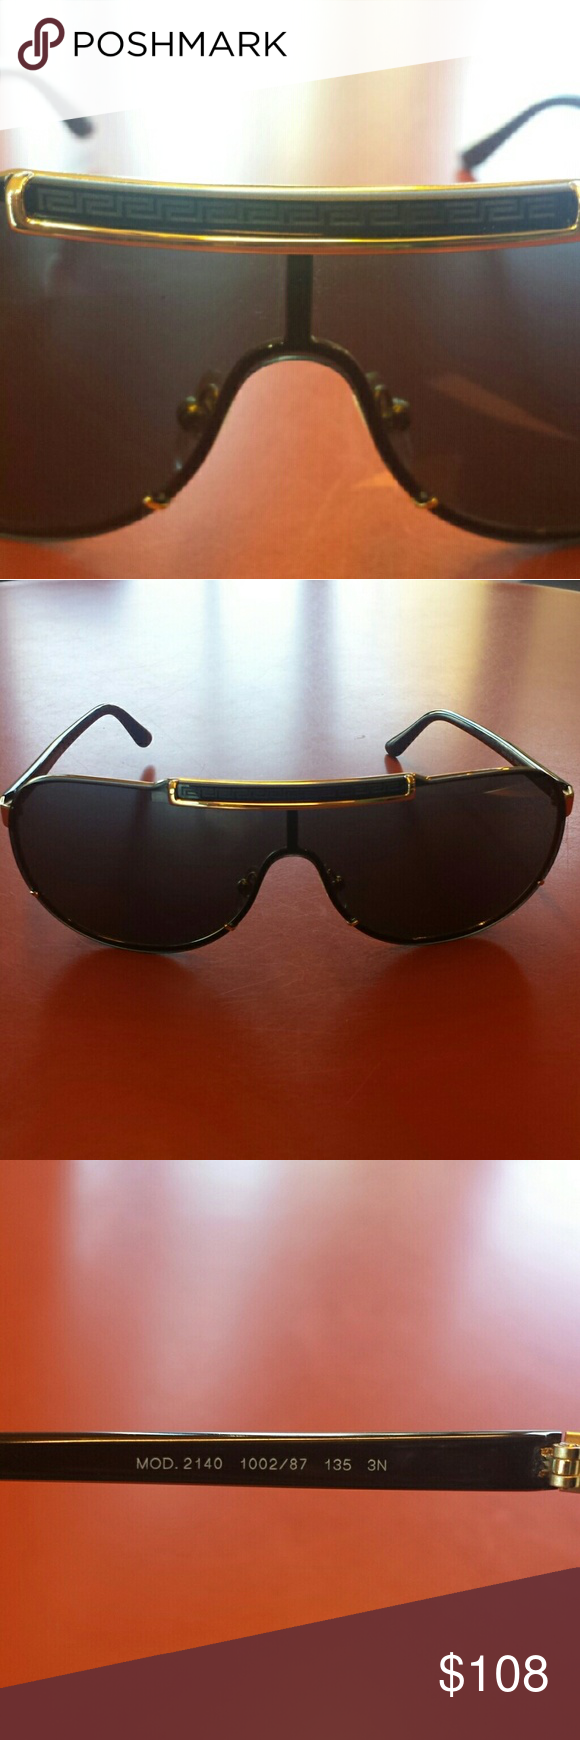 2032e16db70c0 Authentic VERSACE Sunglasses Brand New Never Worn. Lost the original case.  MODEL    MOD.2140 1002 87 135 3N. as pictured above. Excellent Deal! Versace  ...